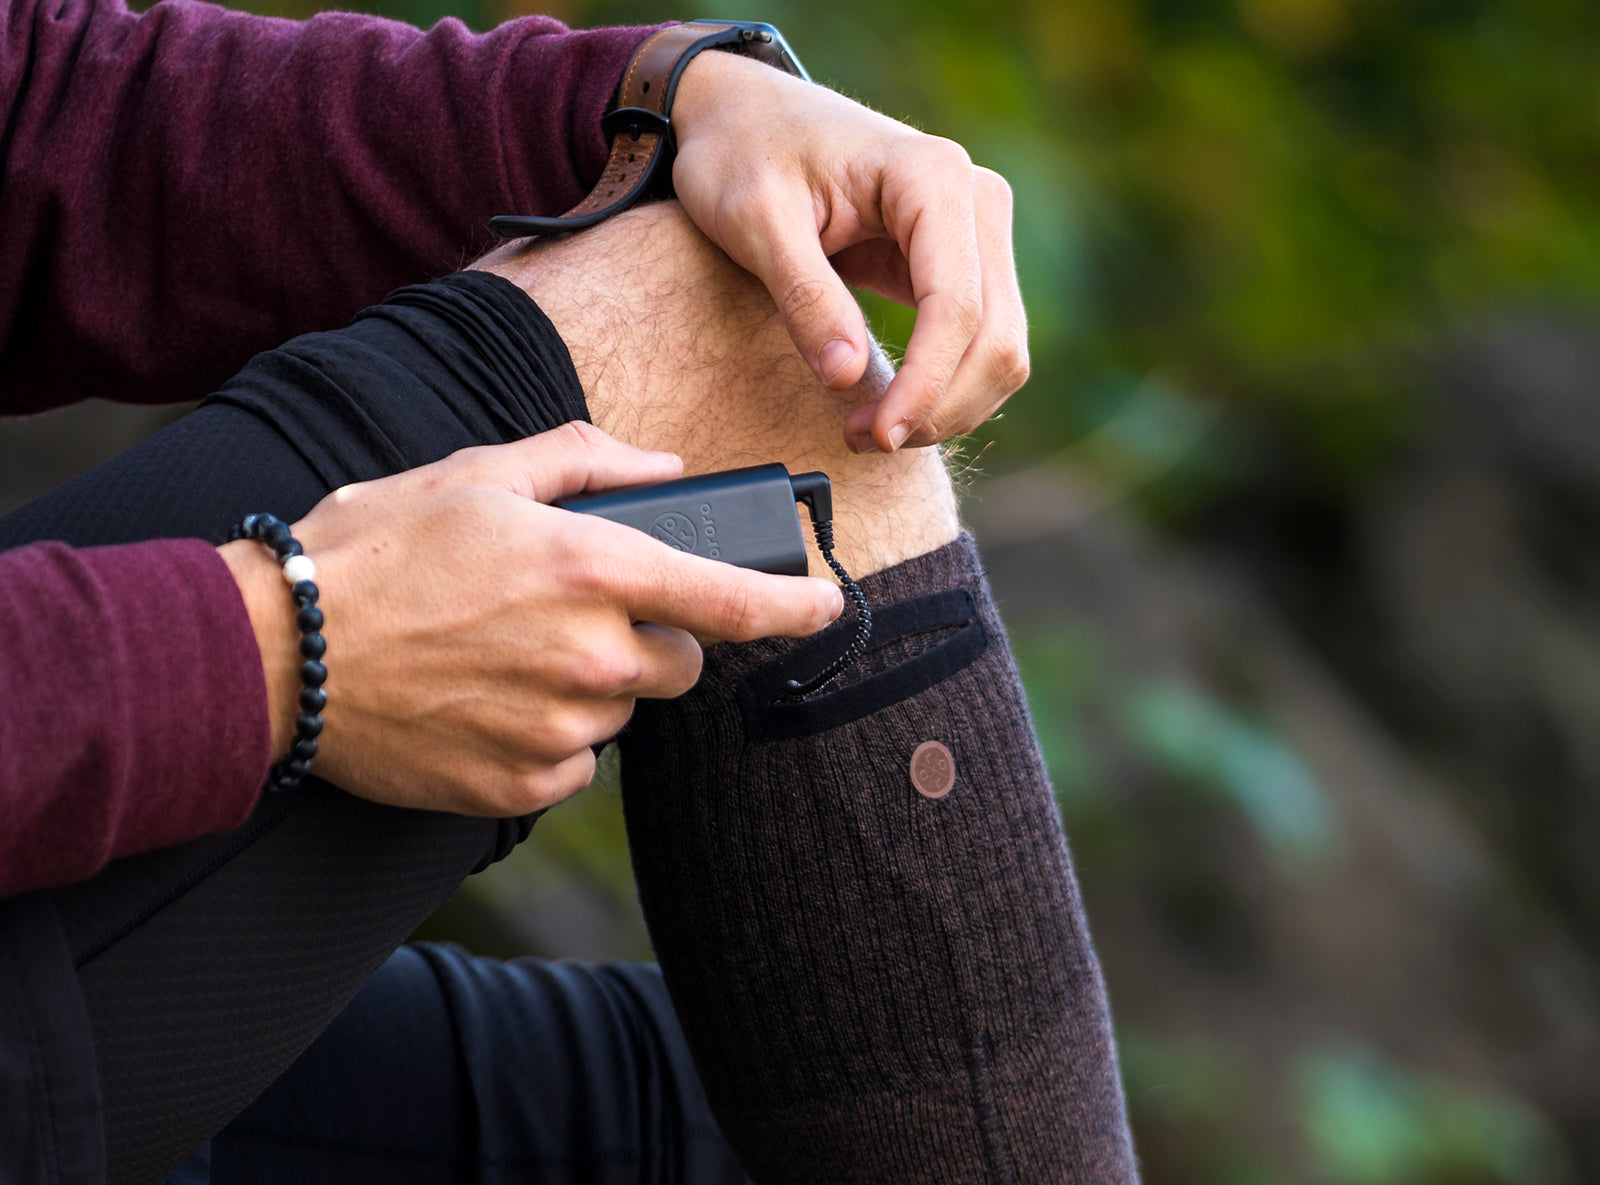 heated socks for dads